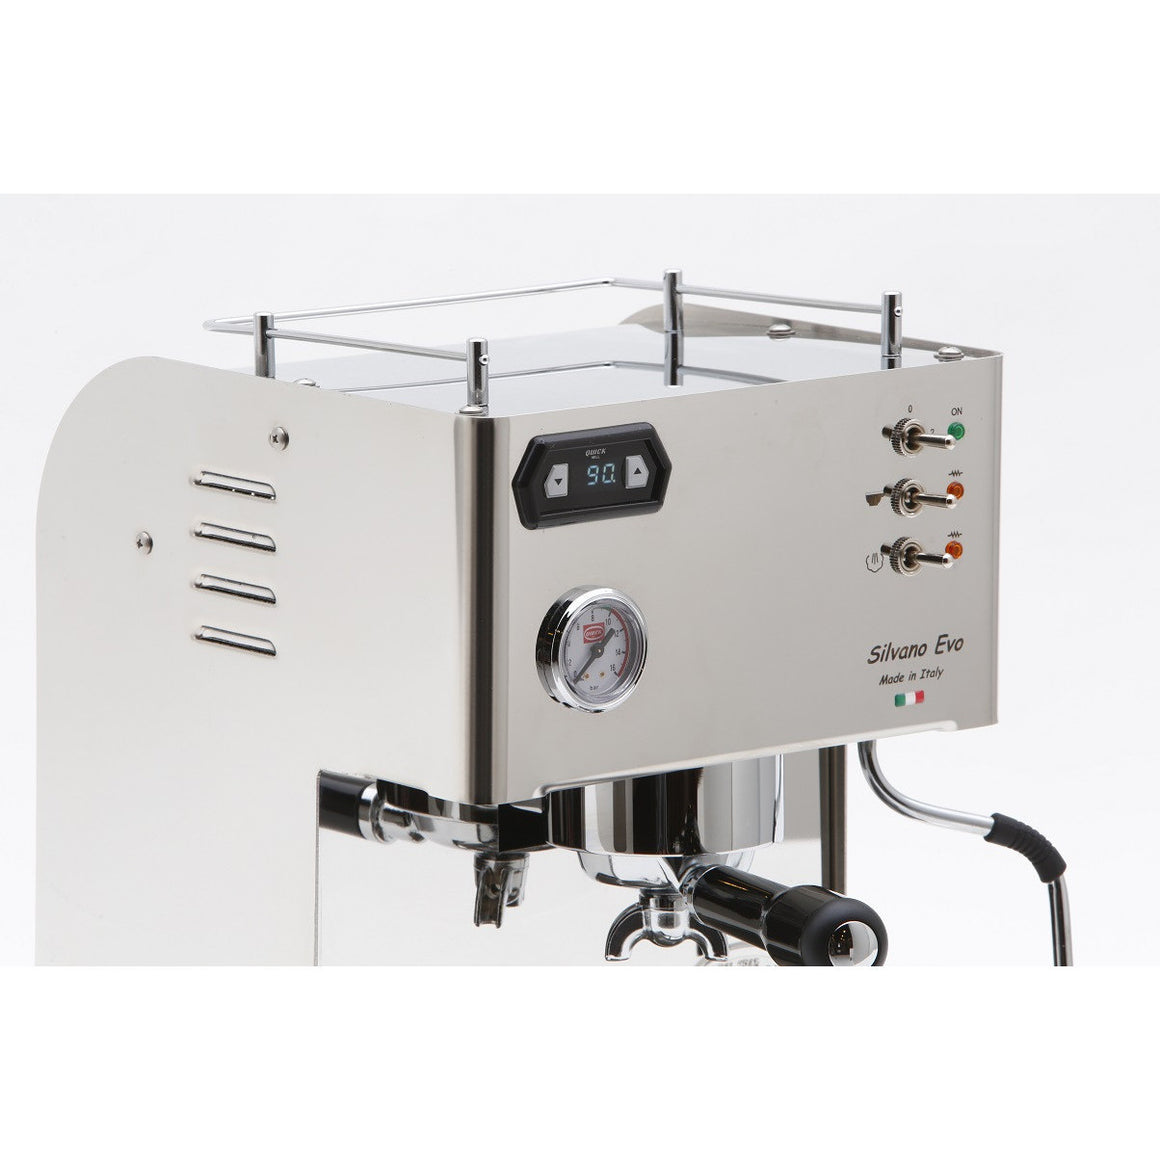 QUICK MILL SILVANO EVO ESPRESSO MACHINE - My Espresso Shop - 12